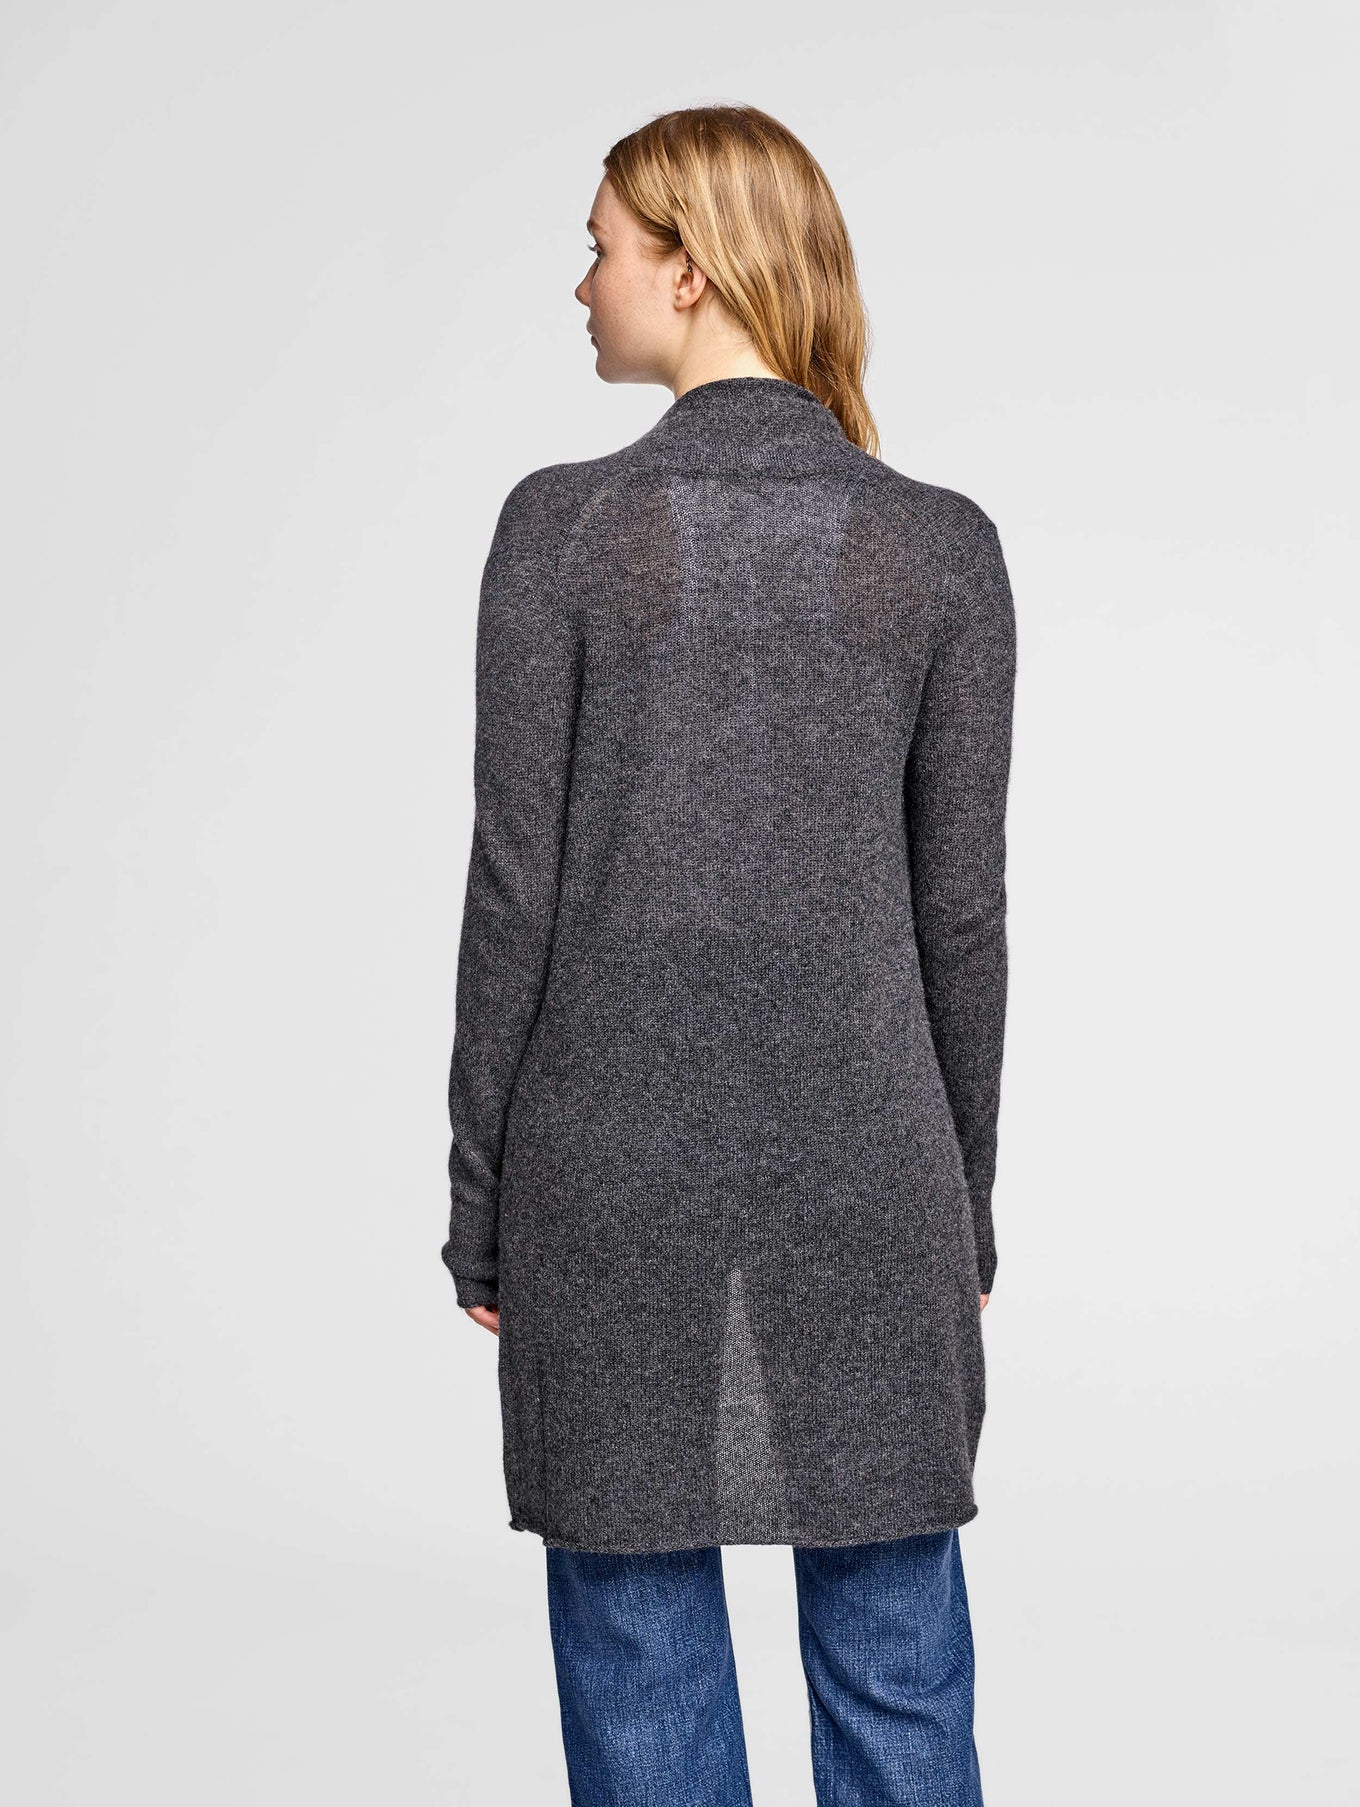 Essential Cashmere Trapeze Cardigan - Charcoal Heather - Image 3